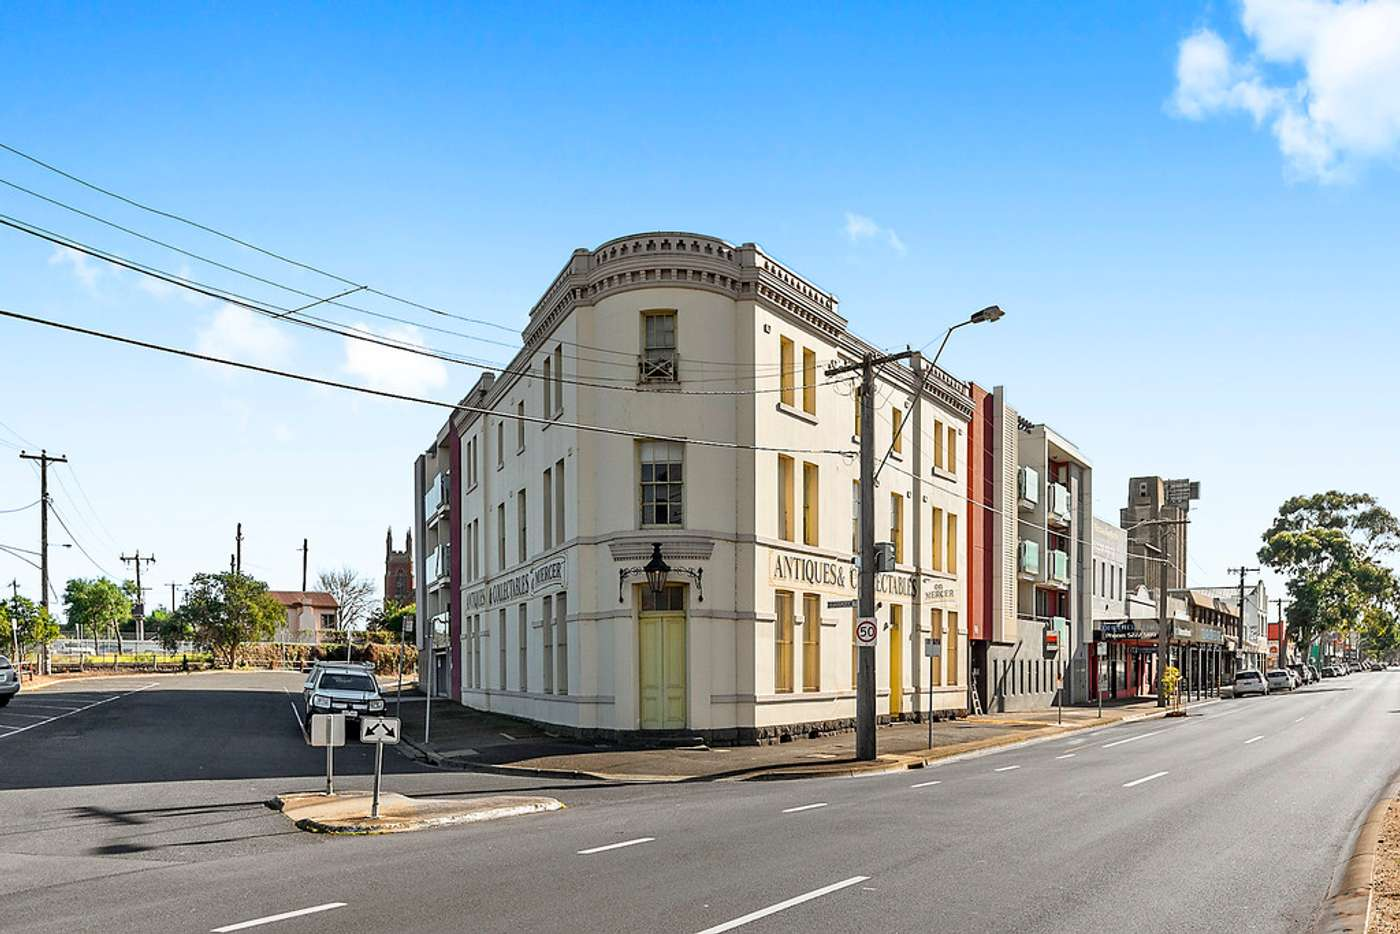 Main view of Homely apartment listing, 18/96 Mercer Street, Geelong VIC 3220